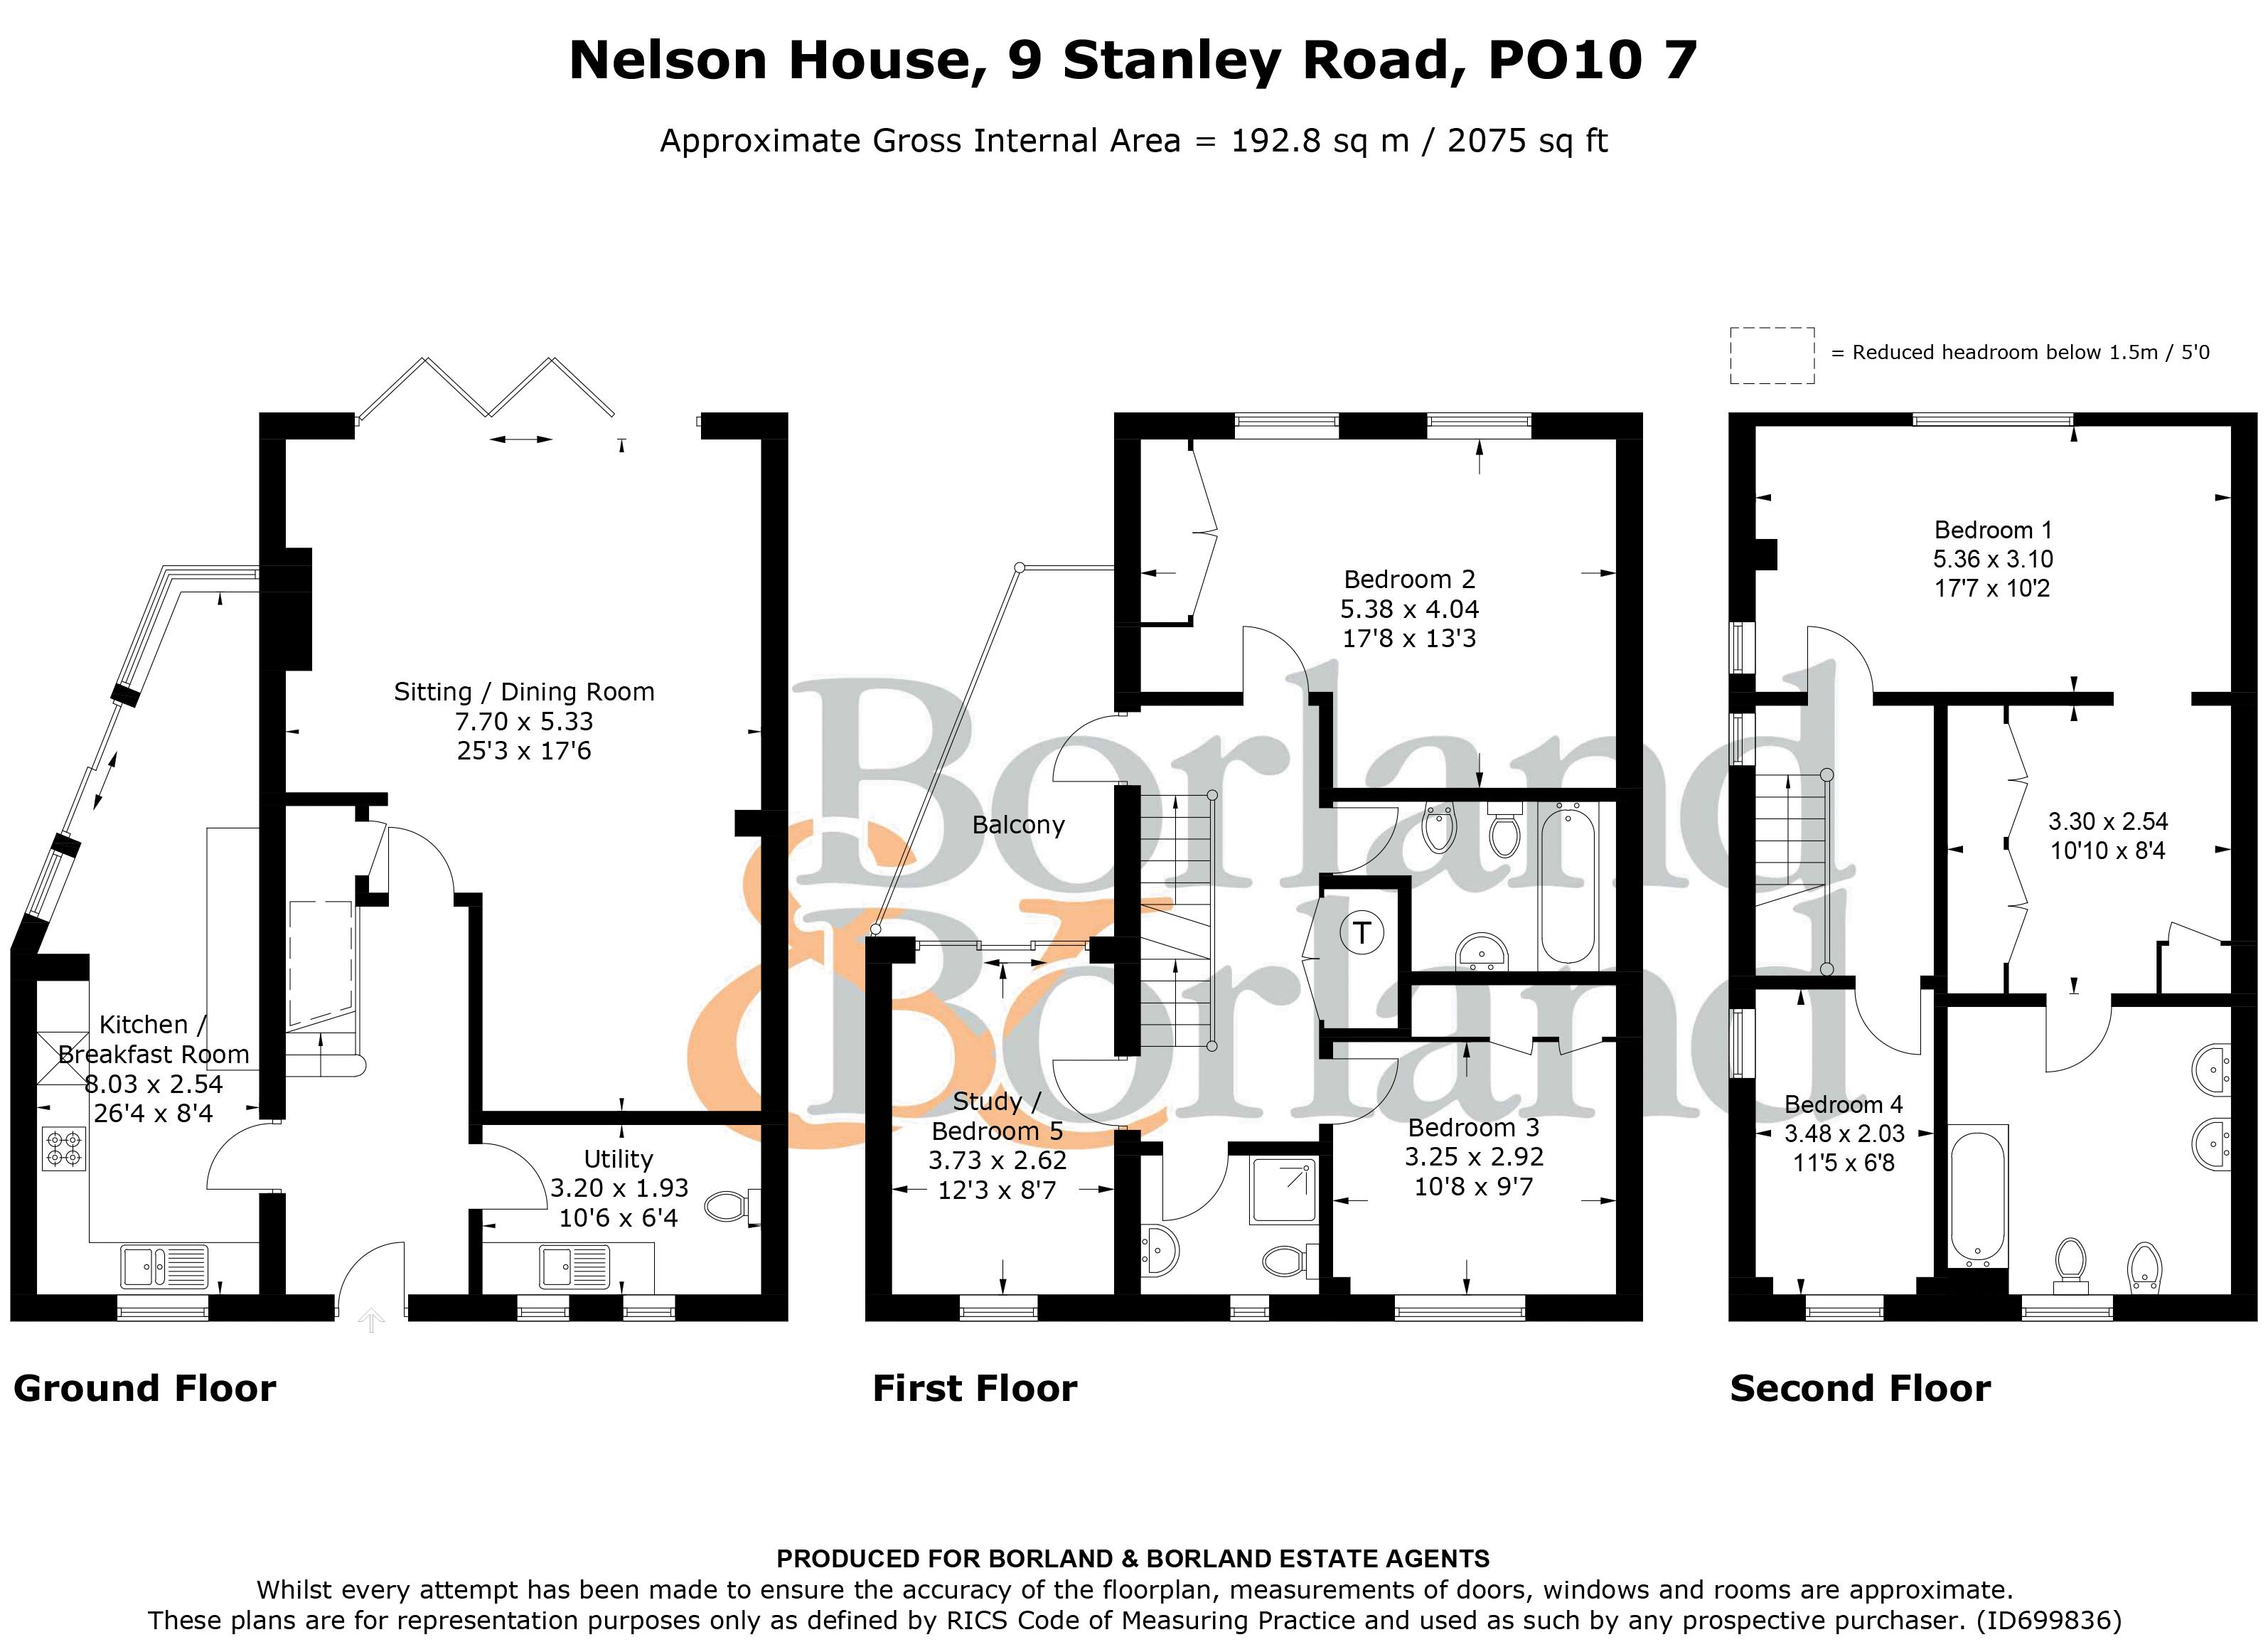 Nelson House 9 Stanley Road